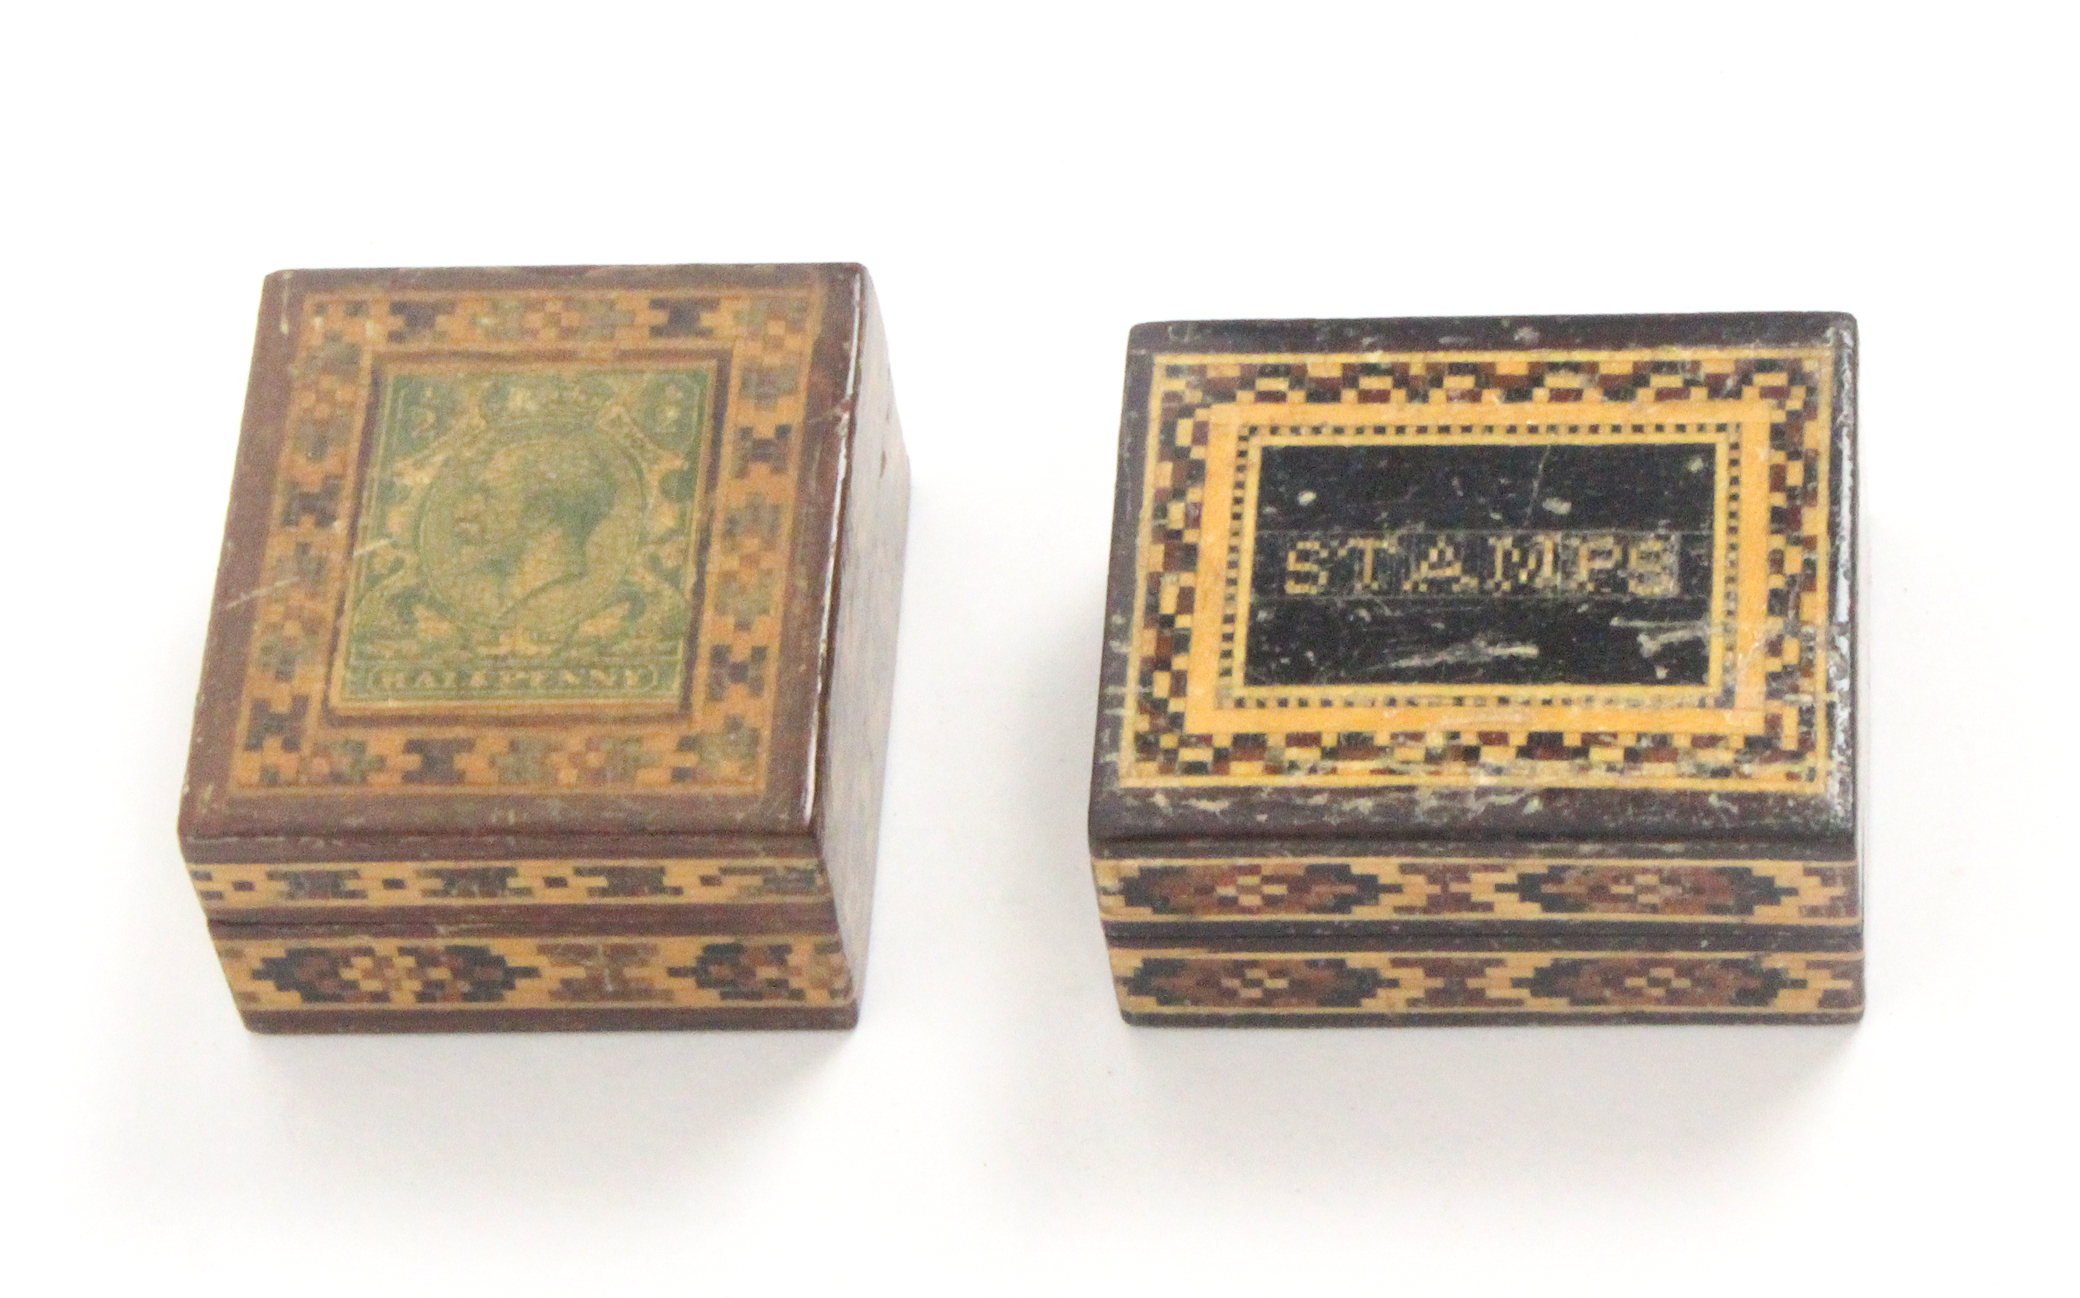 Tunbridge ware - two stamp boxes, both rectangular comprising an example titled to the lid in mosaic